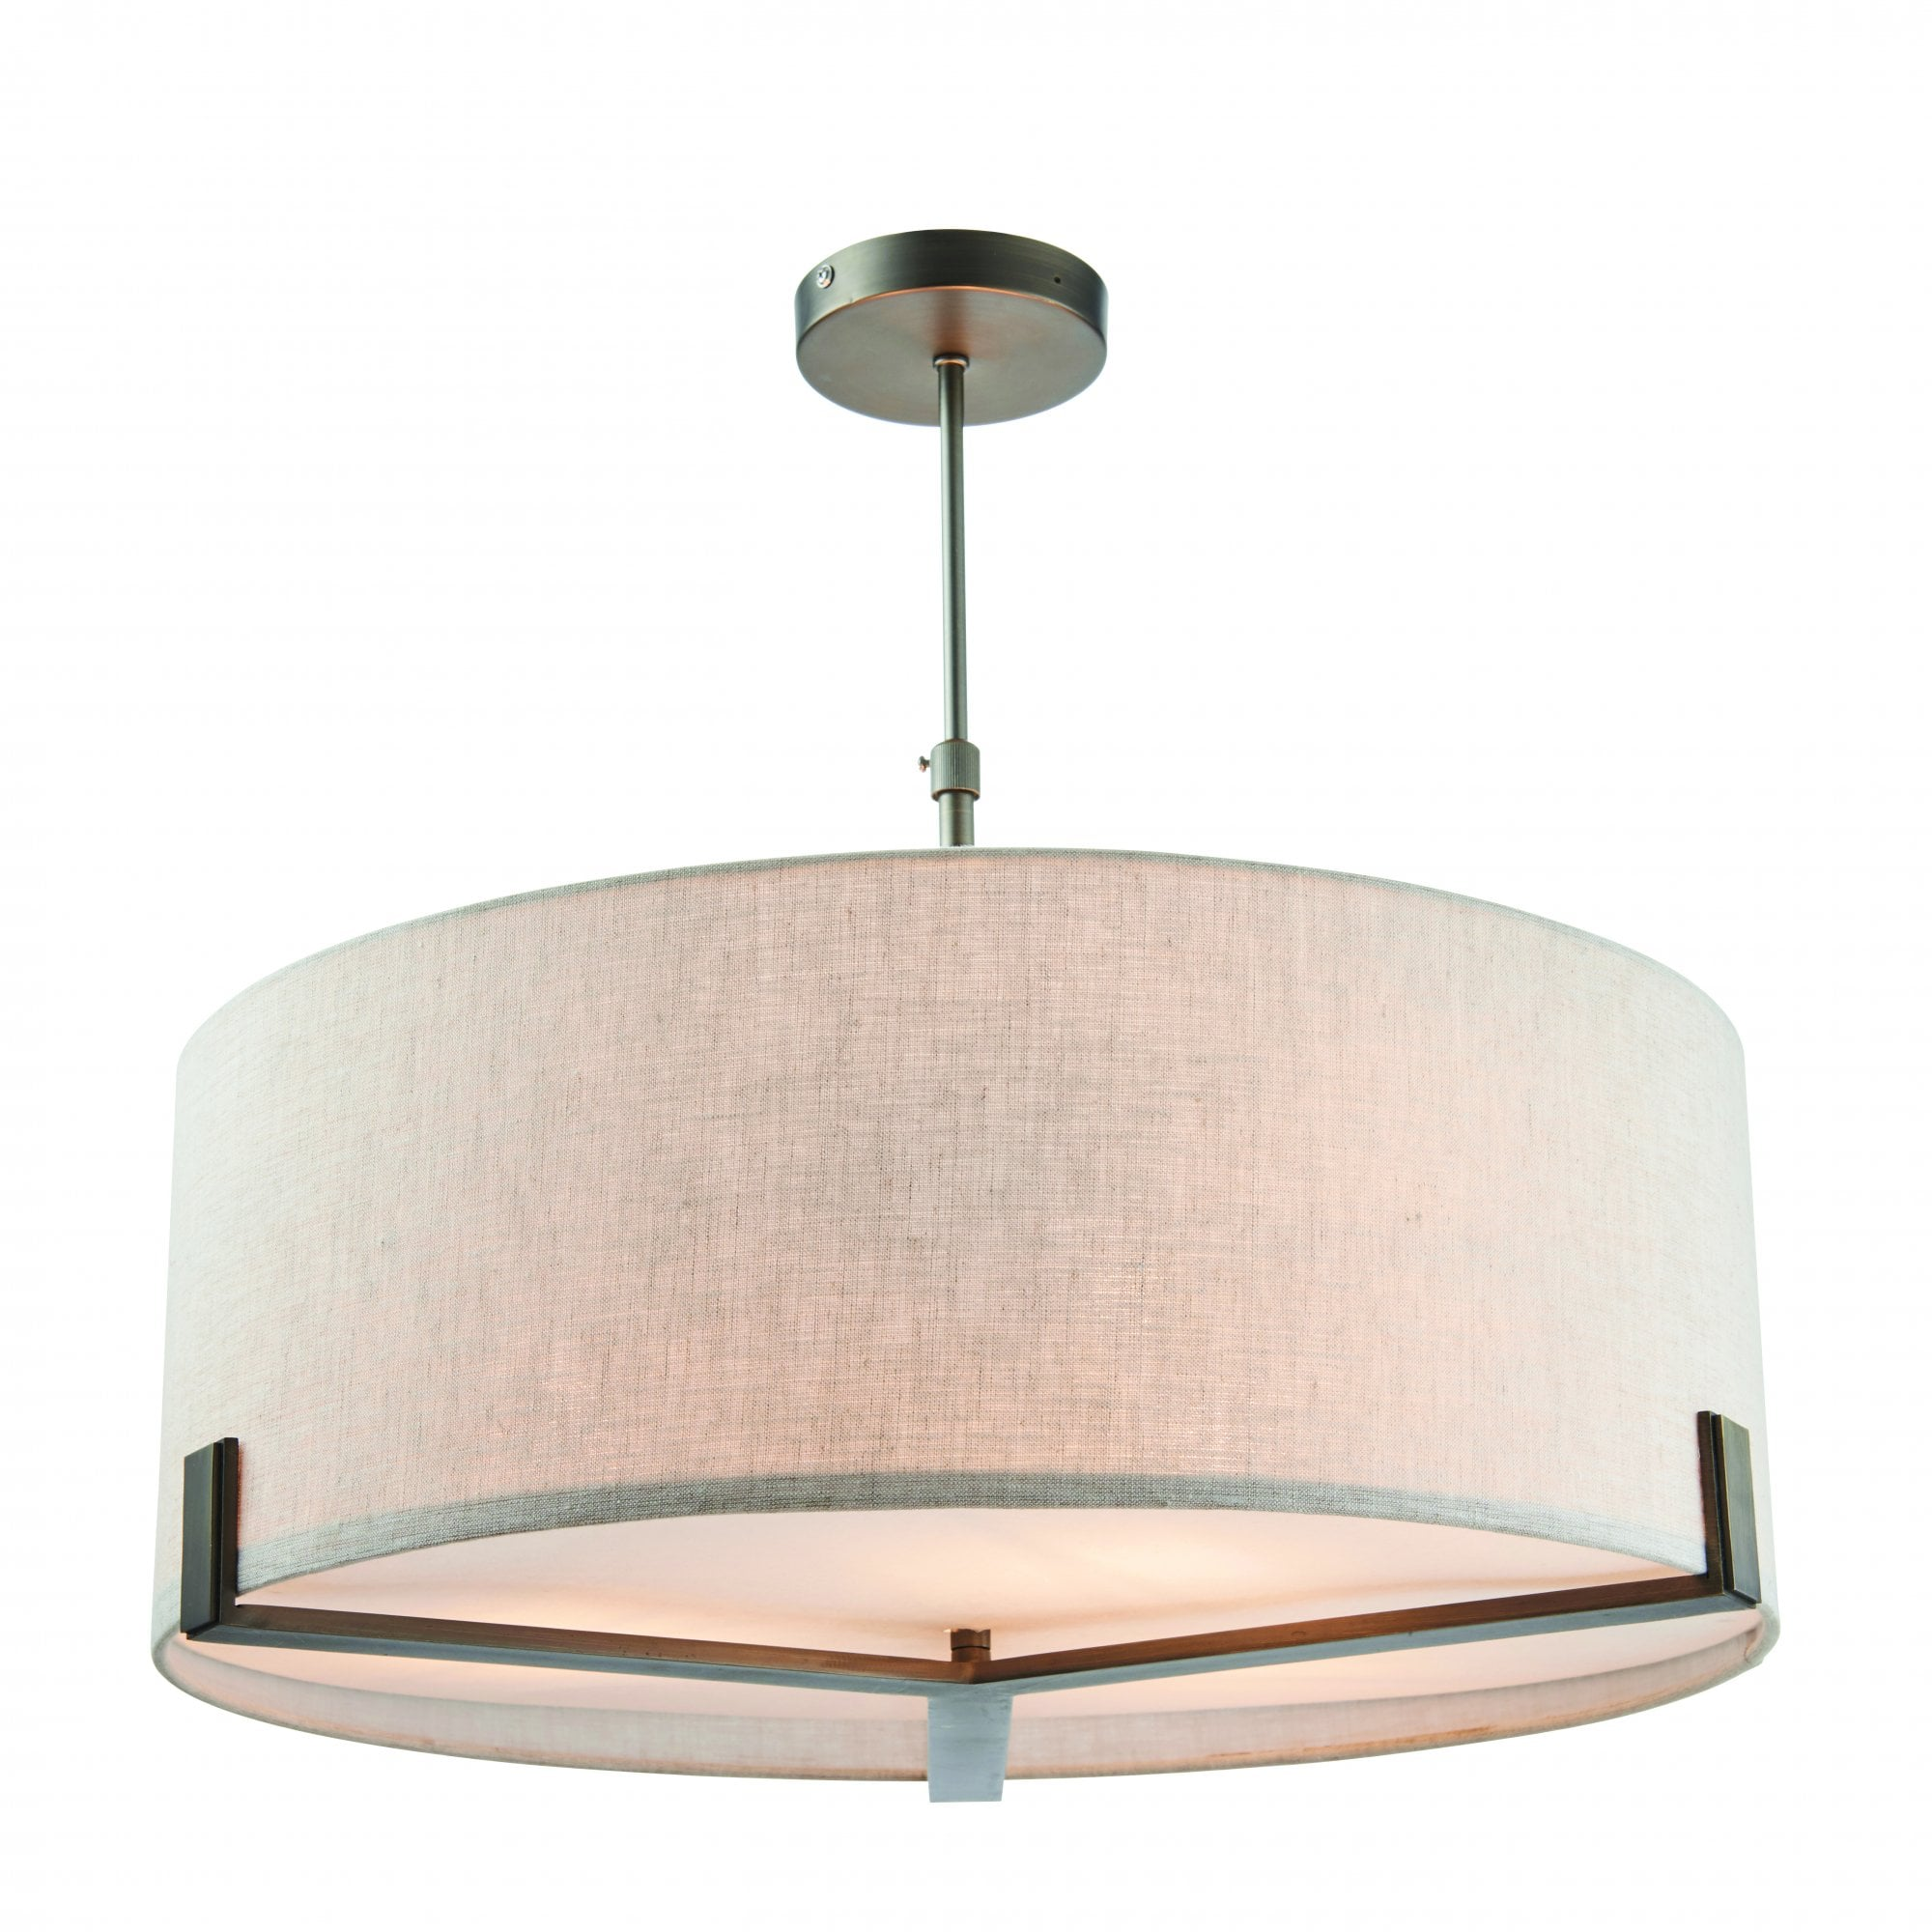 Brushed Bronze Effect 3 Light Ceiling Pendant With Natural Linen Shade